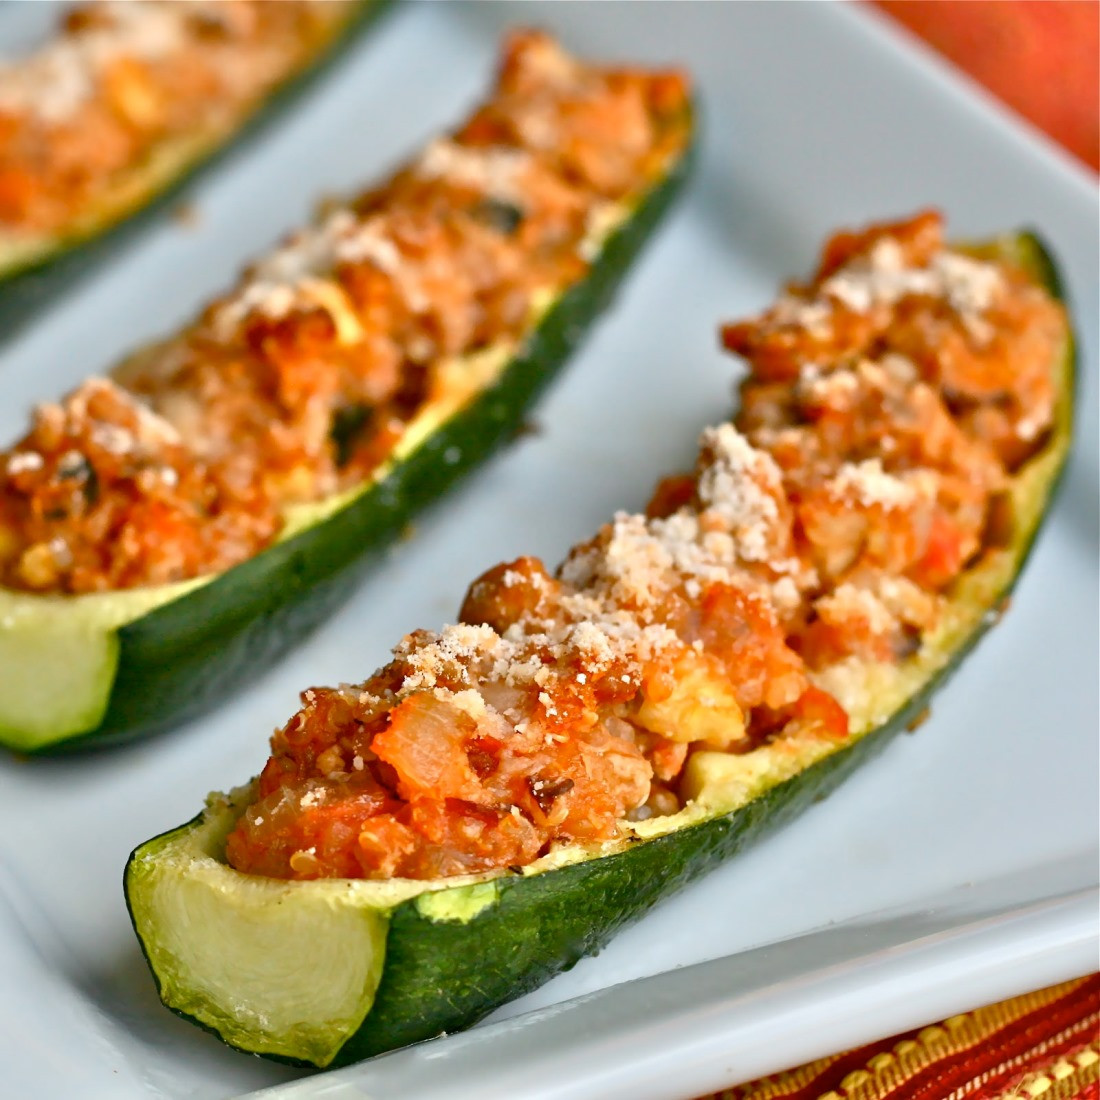 Healthy Recipes With Ground Turkey Meat  Say Bye to Beef With 14 Ground Turkey Recipes